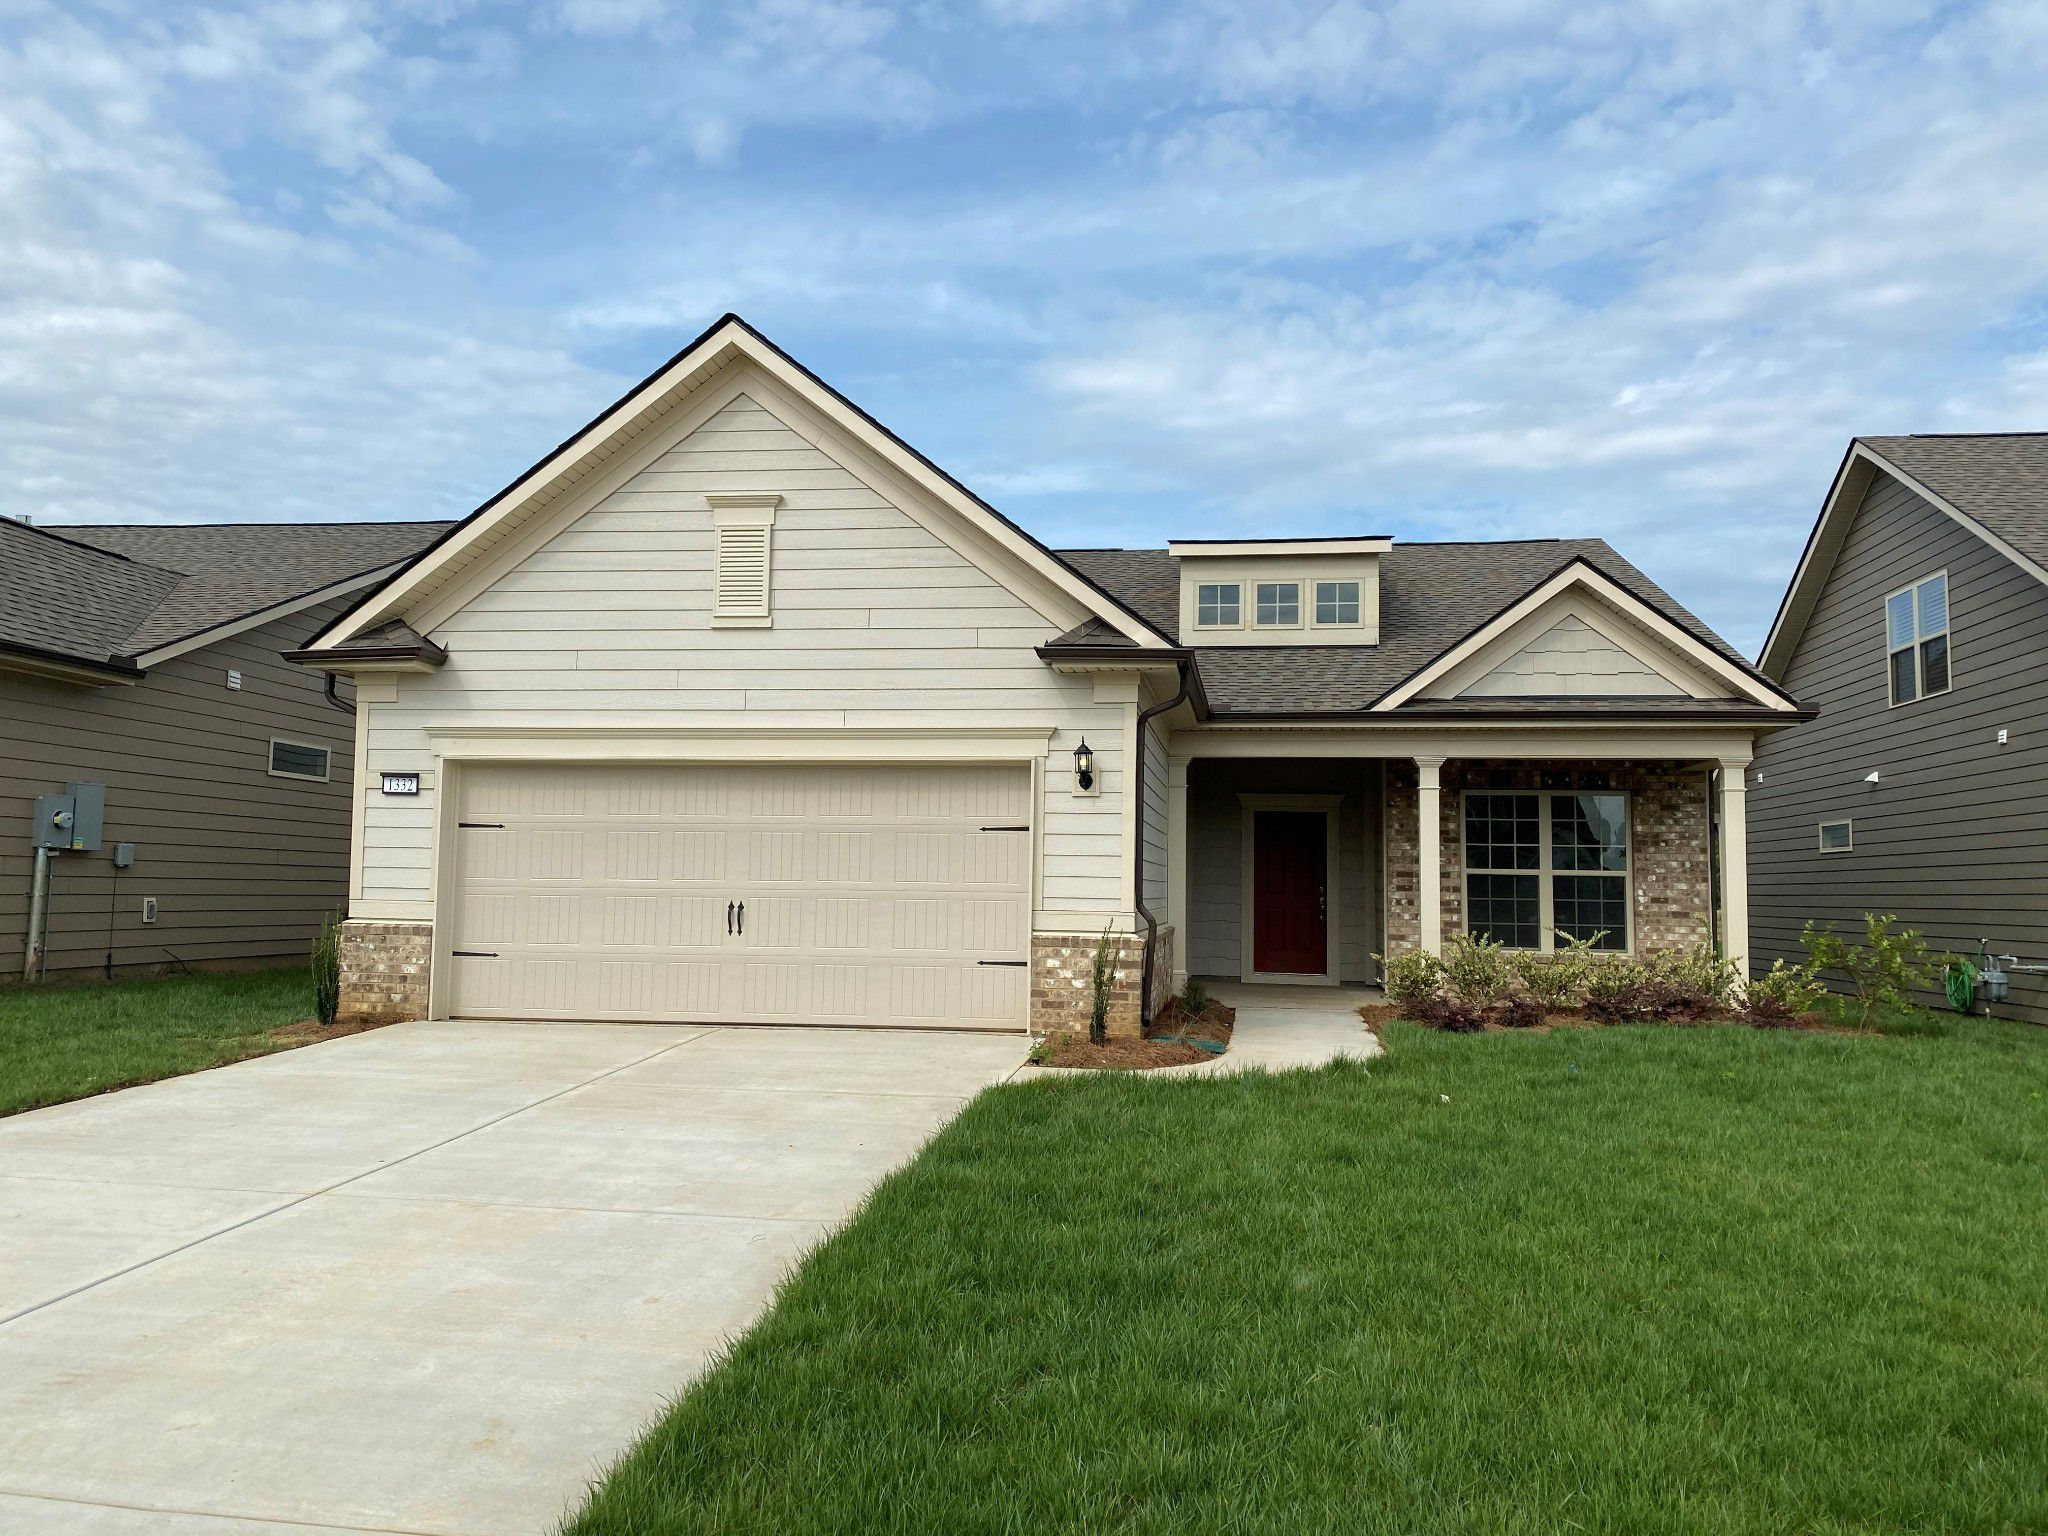 Yorktown Homes For Sale In Murfreesboro Tn